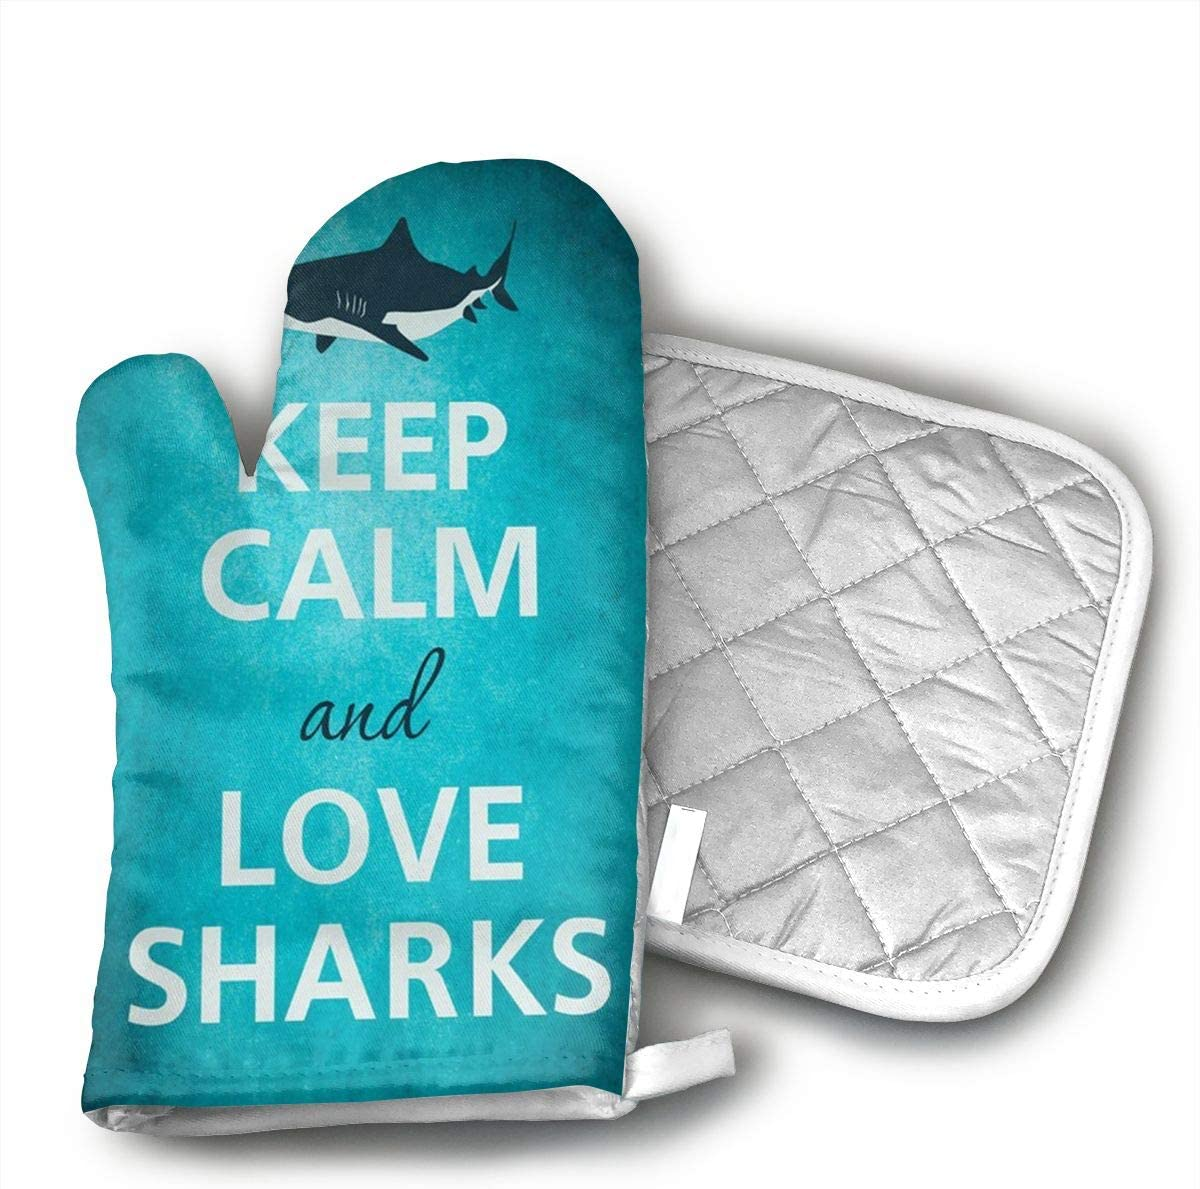 UYRHFS Keep Calm and Love Sharks Great White Oven Mitts and Pot Holder Kitchen Set with, Heat Resistant, Oven Gloves and Pot Holders 2pcs Set for BBQ Cooking Baking